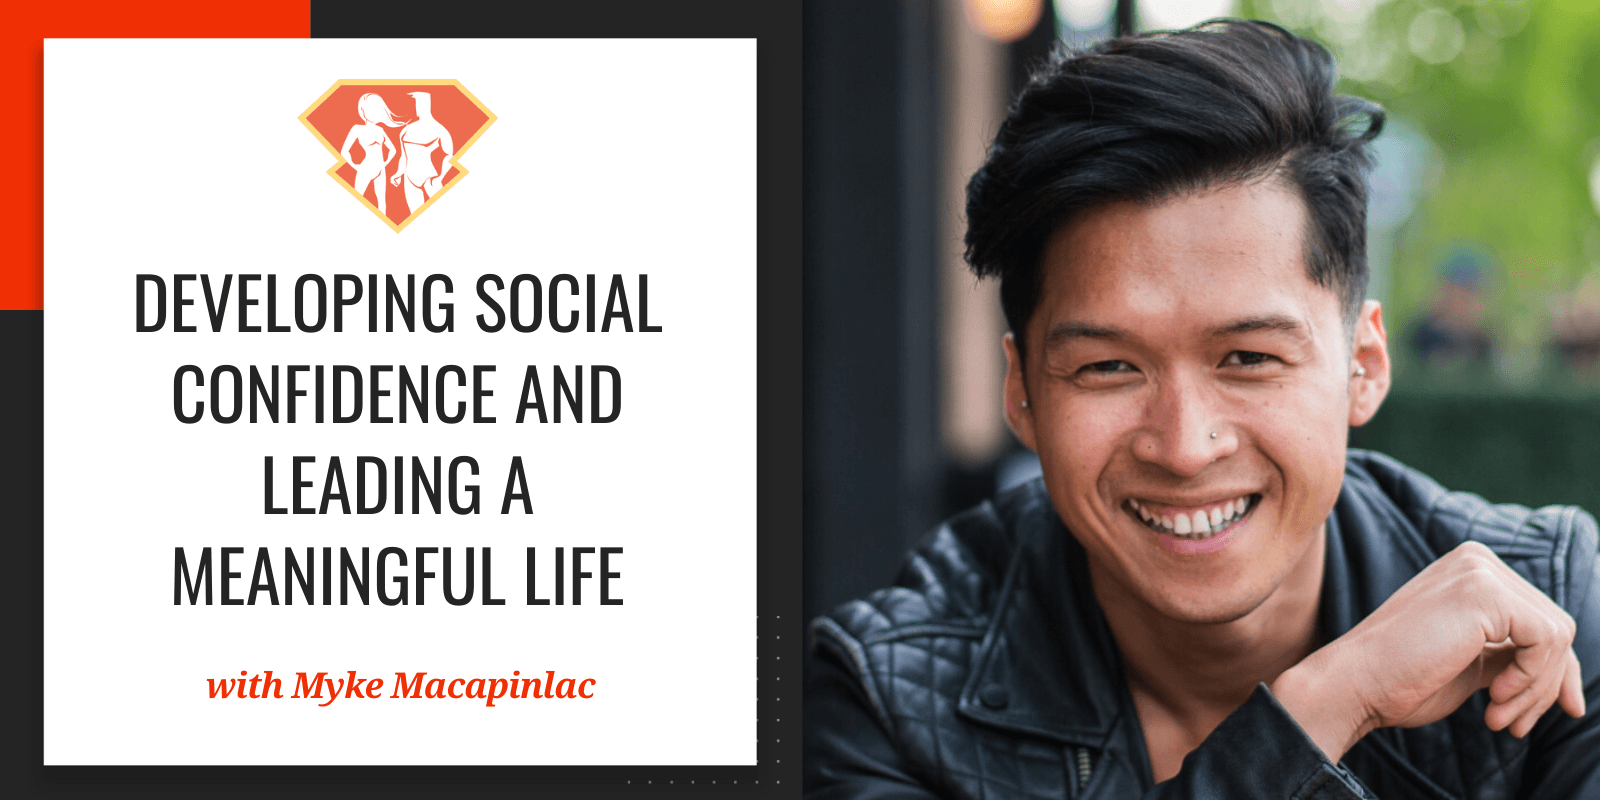 In this episode with Myke Macapinlac, we learn how to develop social confidence and how to lead a life full of meaningful relationships.